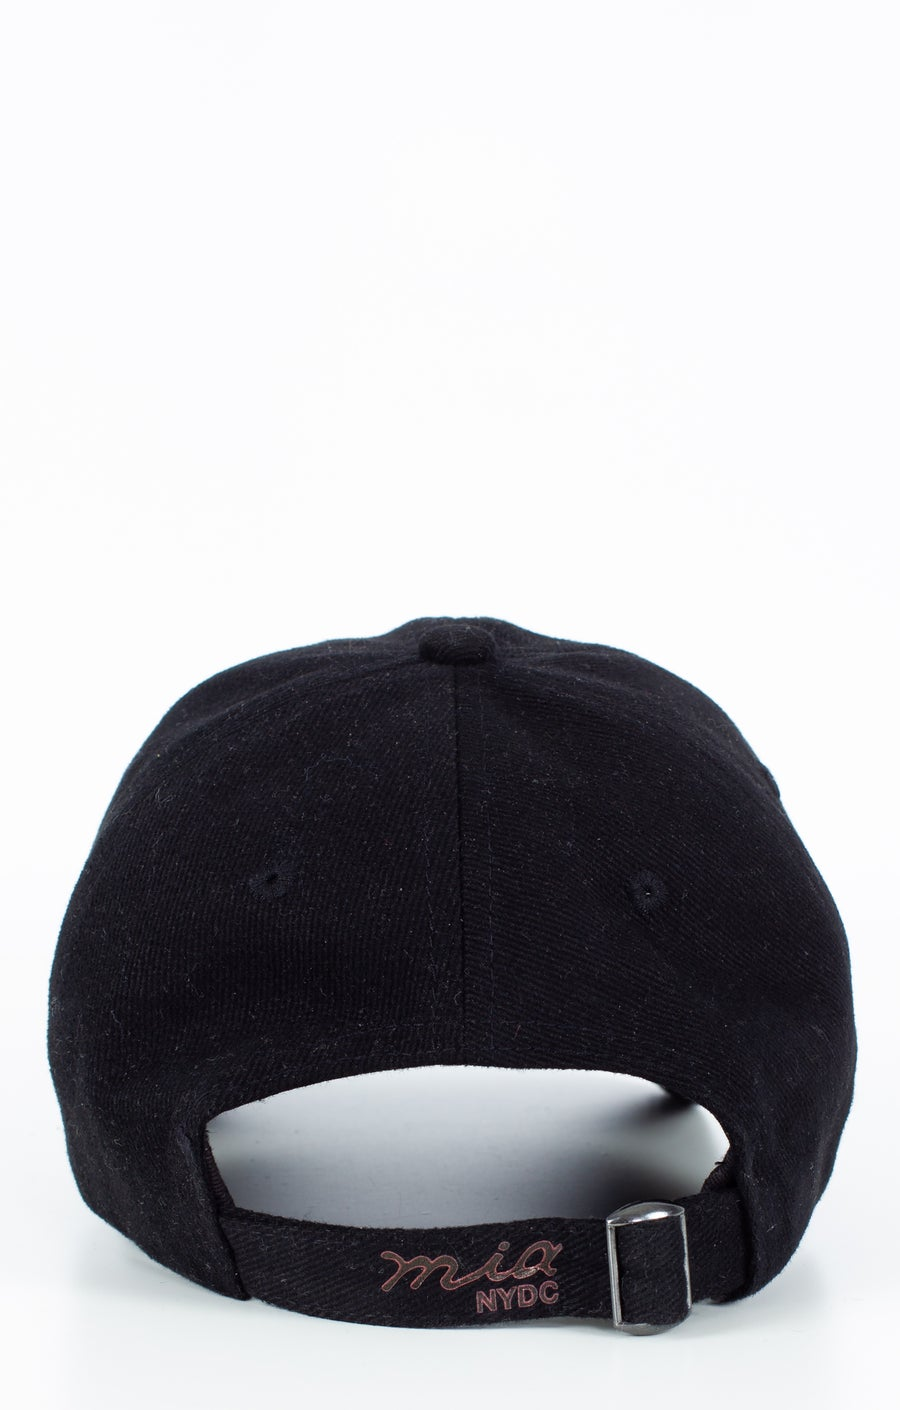 Second Image of logo cap